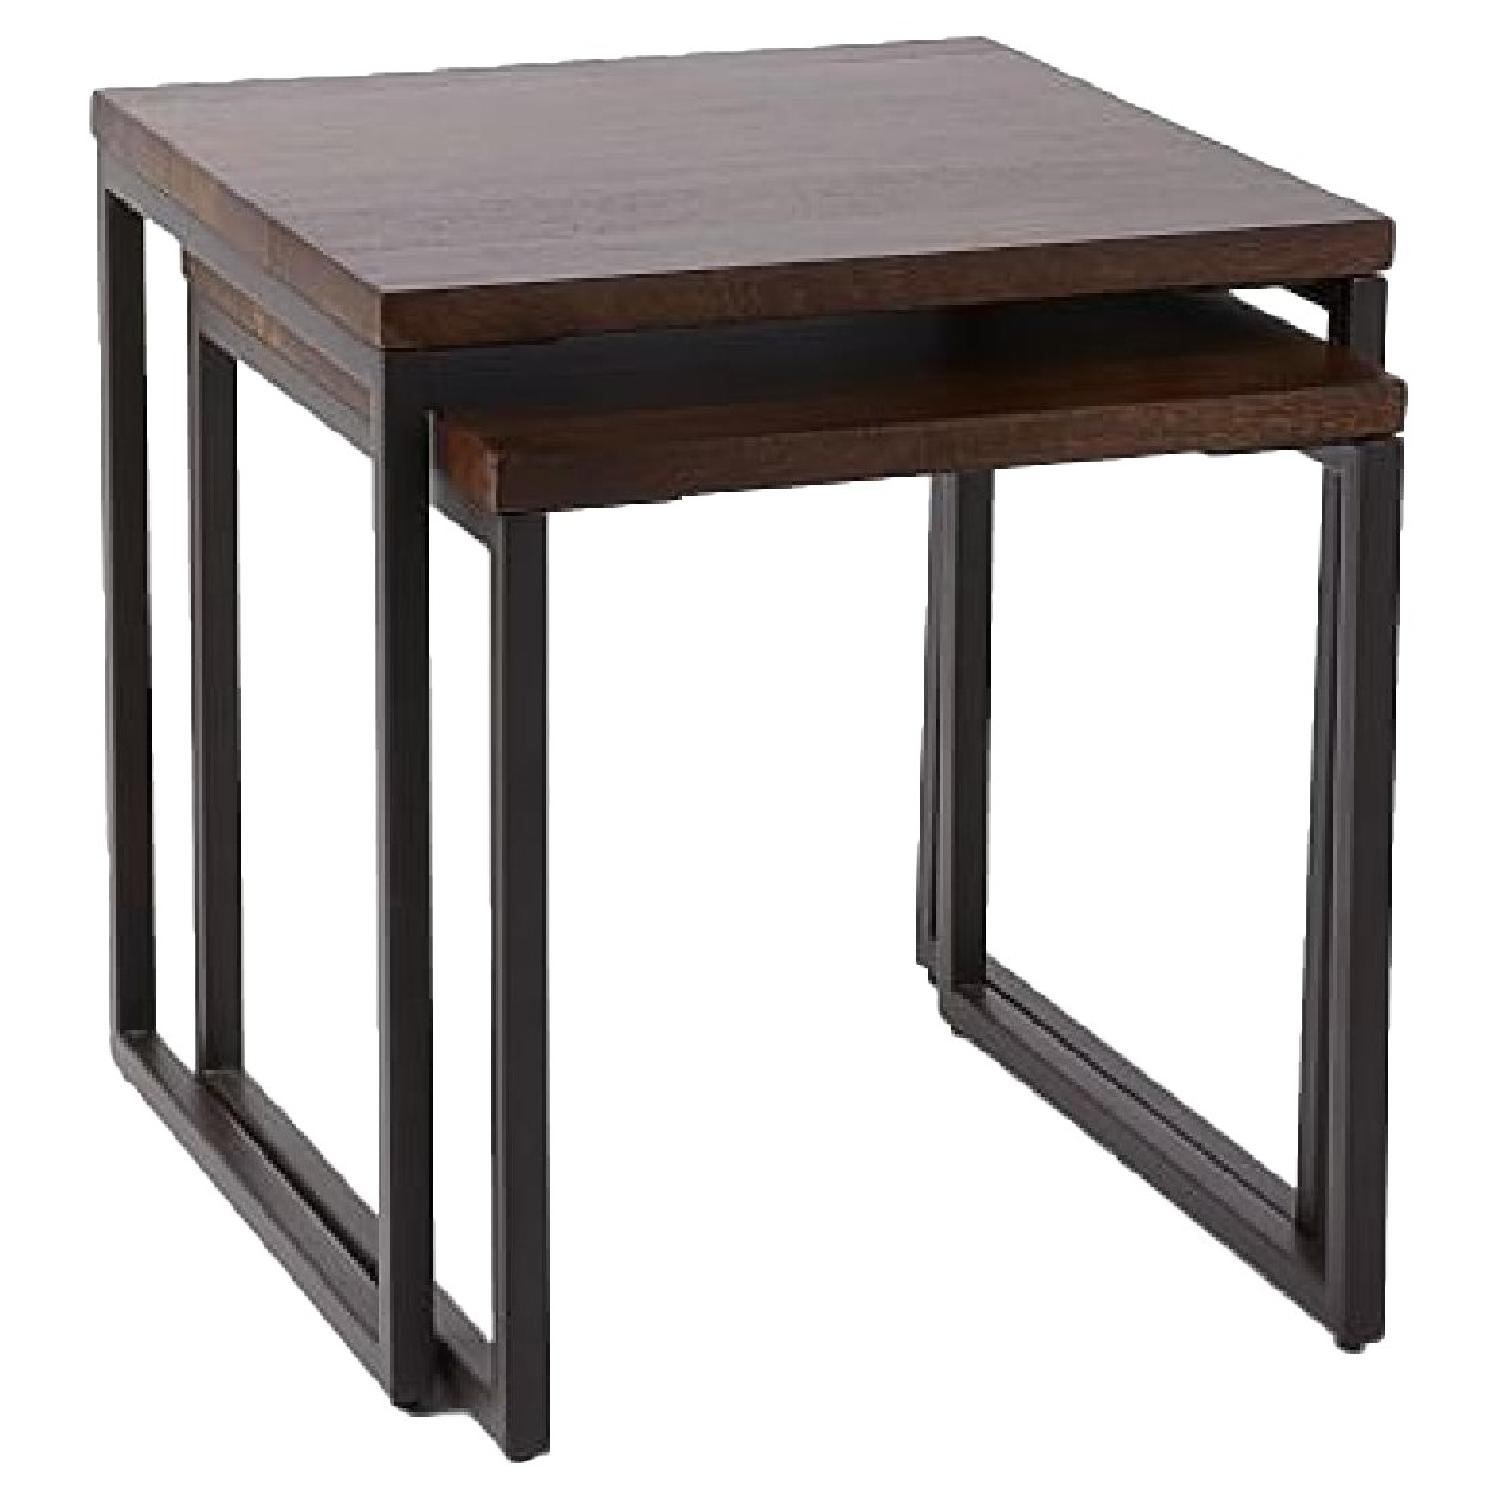 West Elm Box Frame Nesting Tables w/ Wood Top - image-0